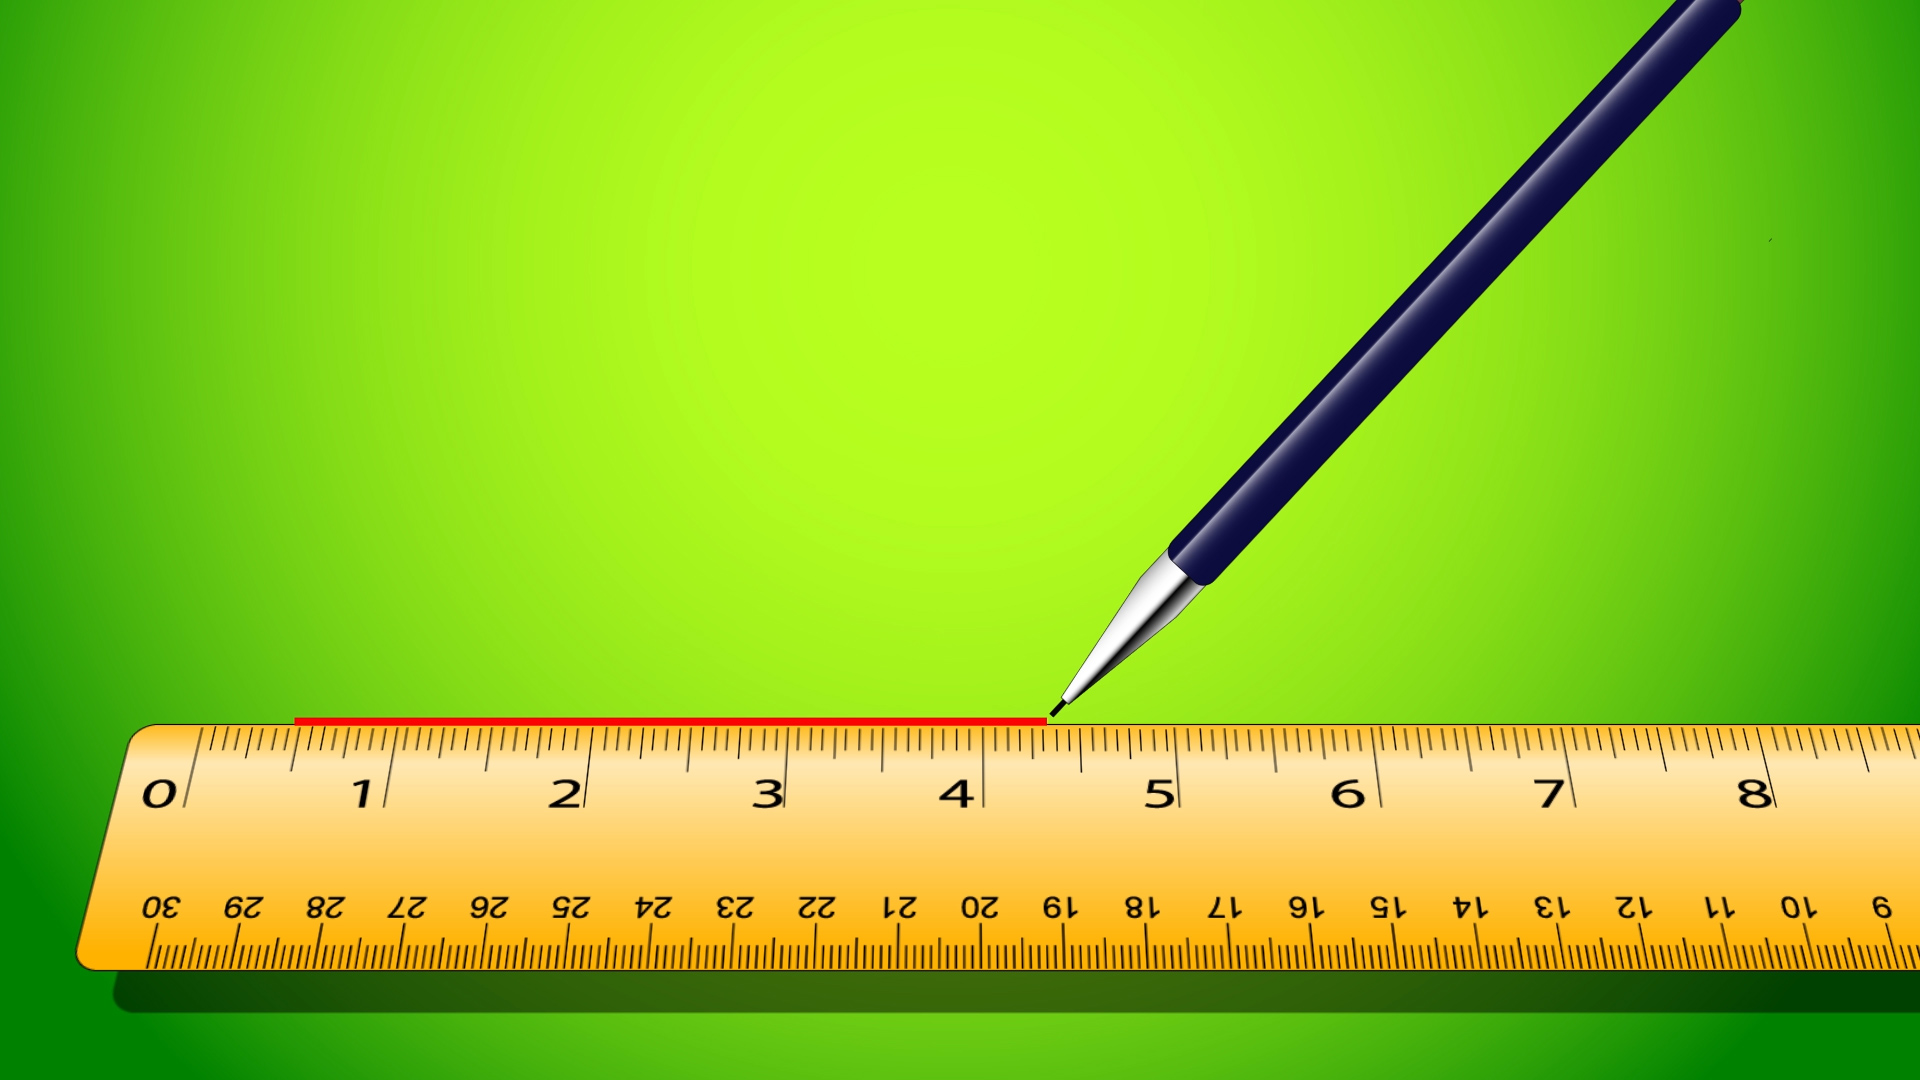 4 Ways To Use A Ruler